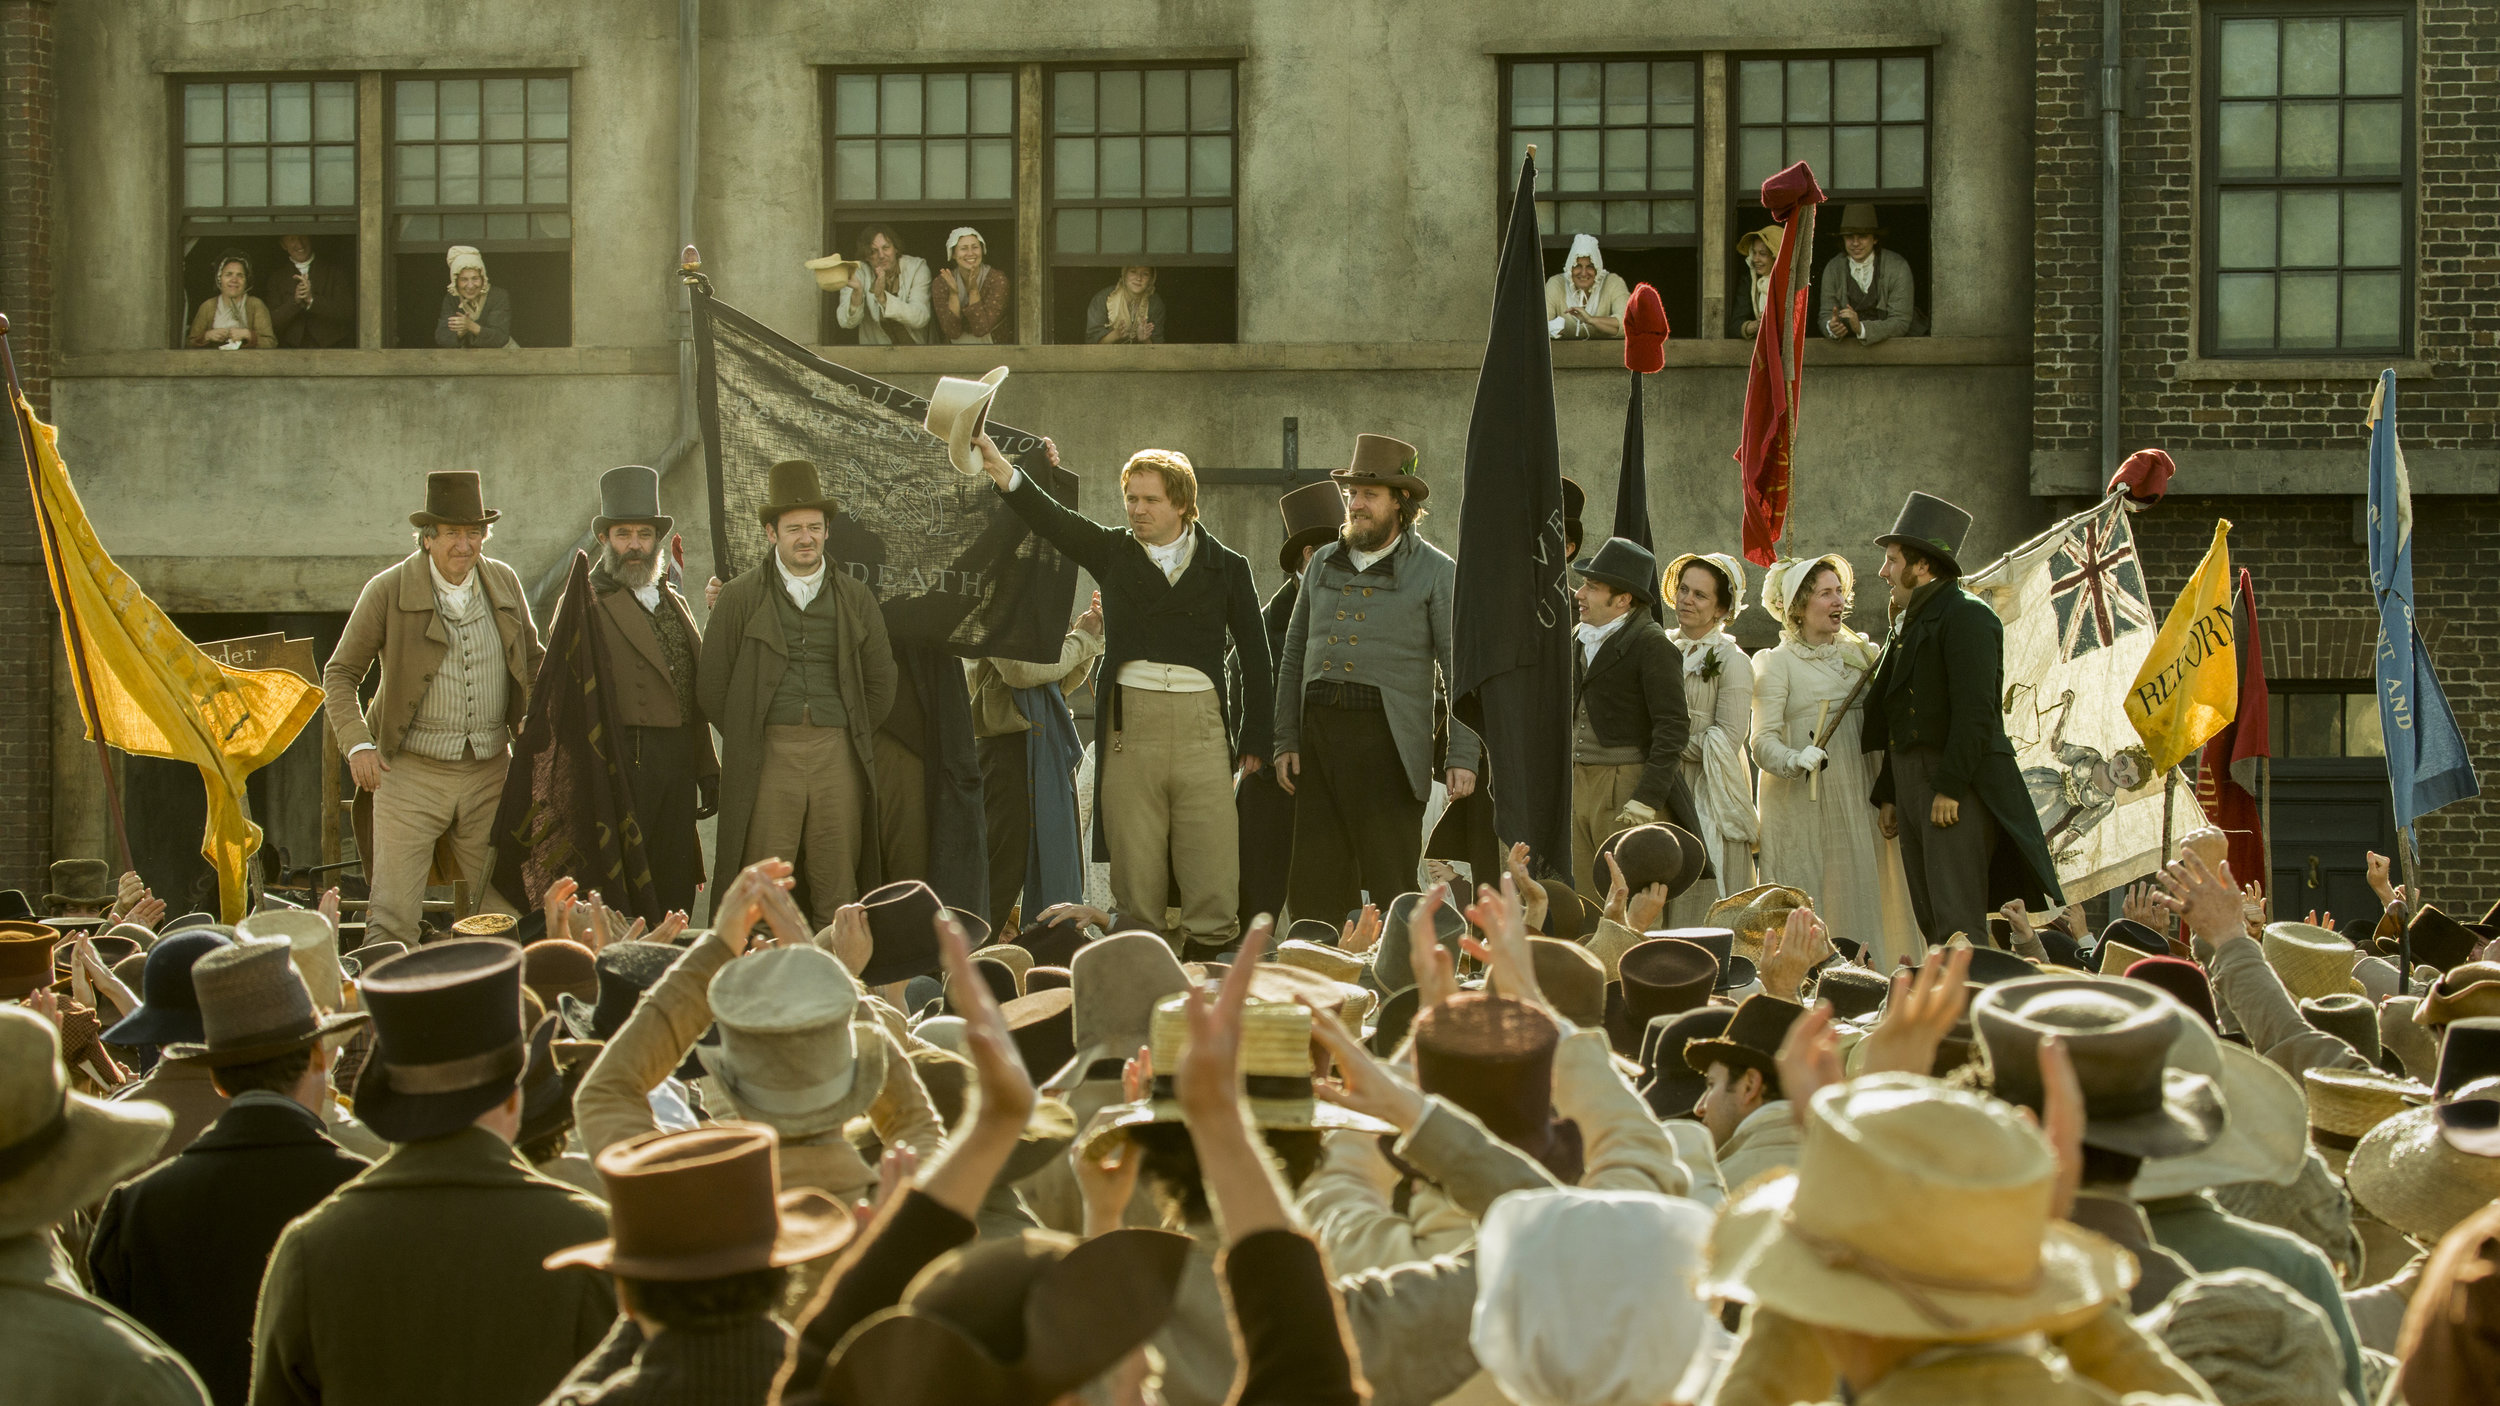 """Reformer Henry Hunt (Rory Kinnear, center, with white hat in hand) waves to the crowds in Manchester's St. Peter's Field, in a scene from Mike Leigh's historical drama """"Peterloo."""" (Photo by Simon Mein, courtesy  Amazon Studios.)"""